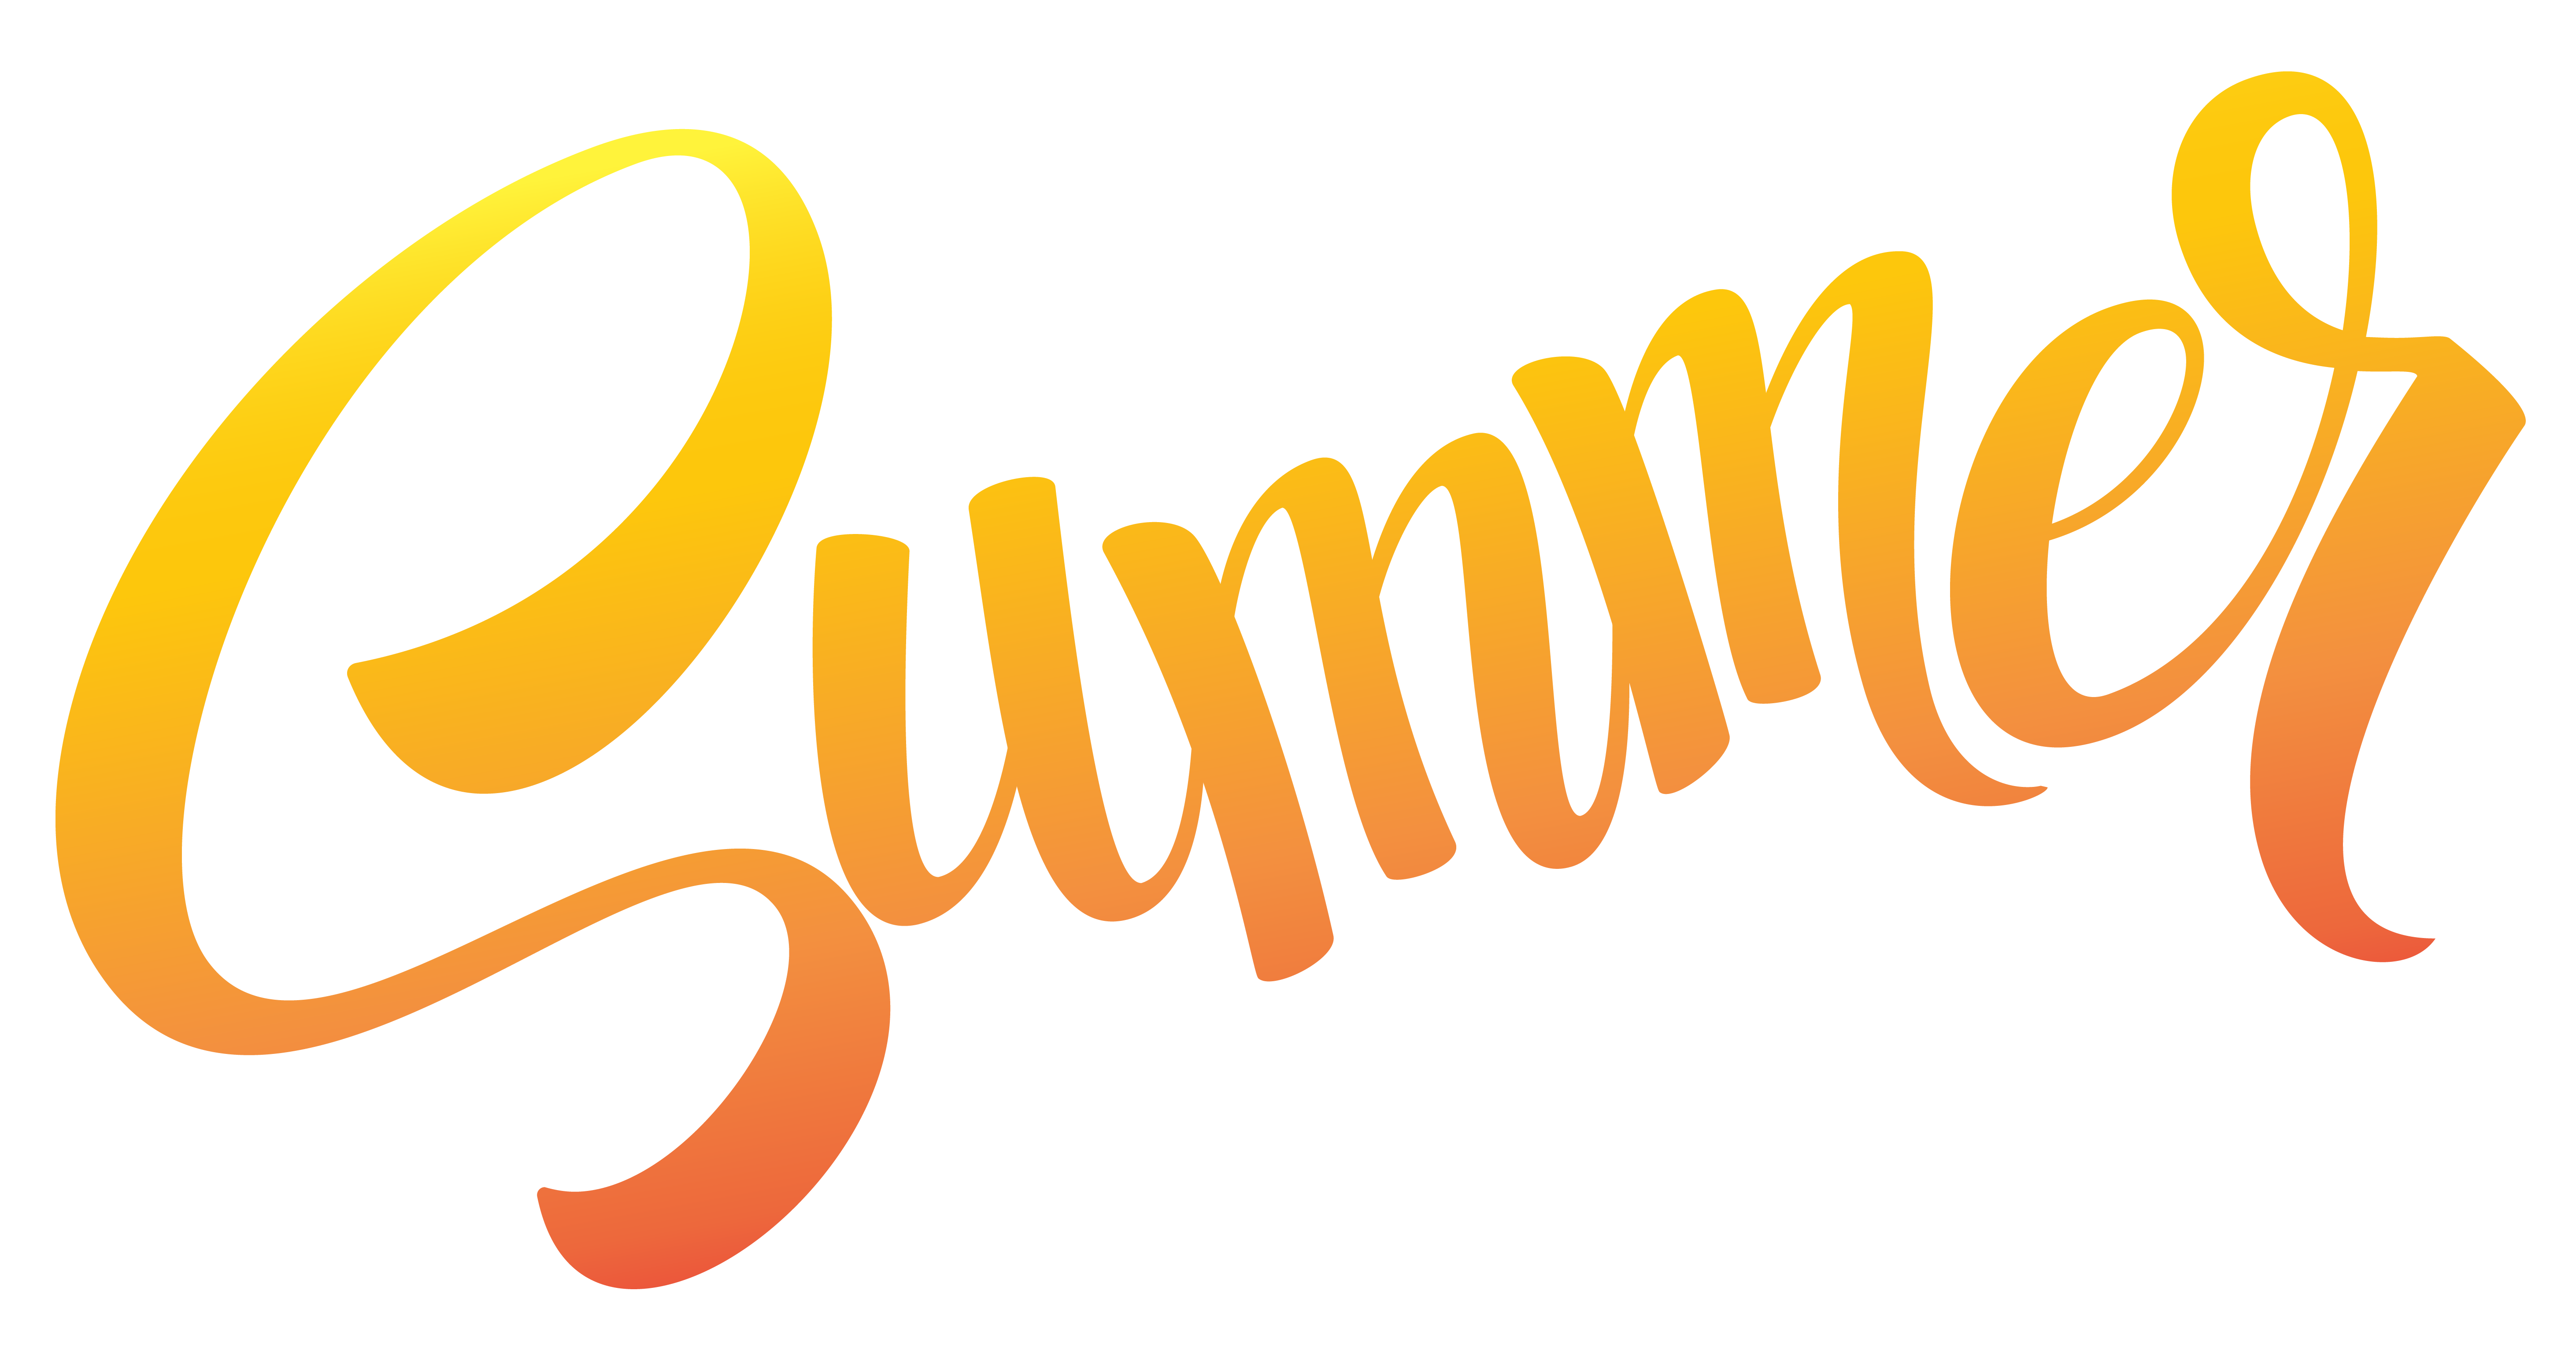 Sumer Text PNG Image.